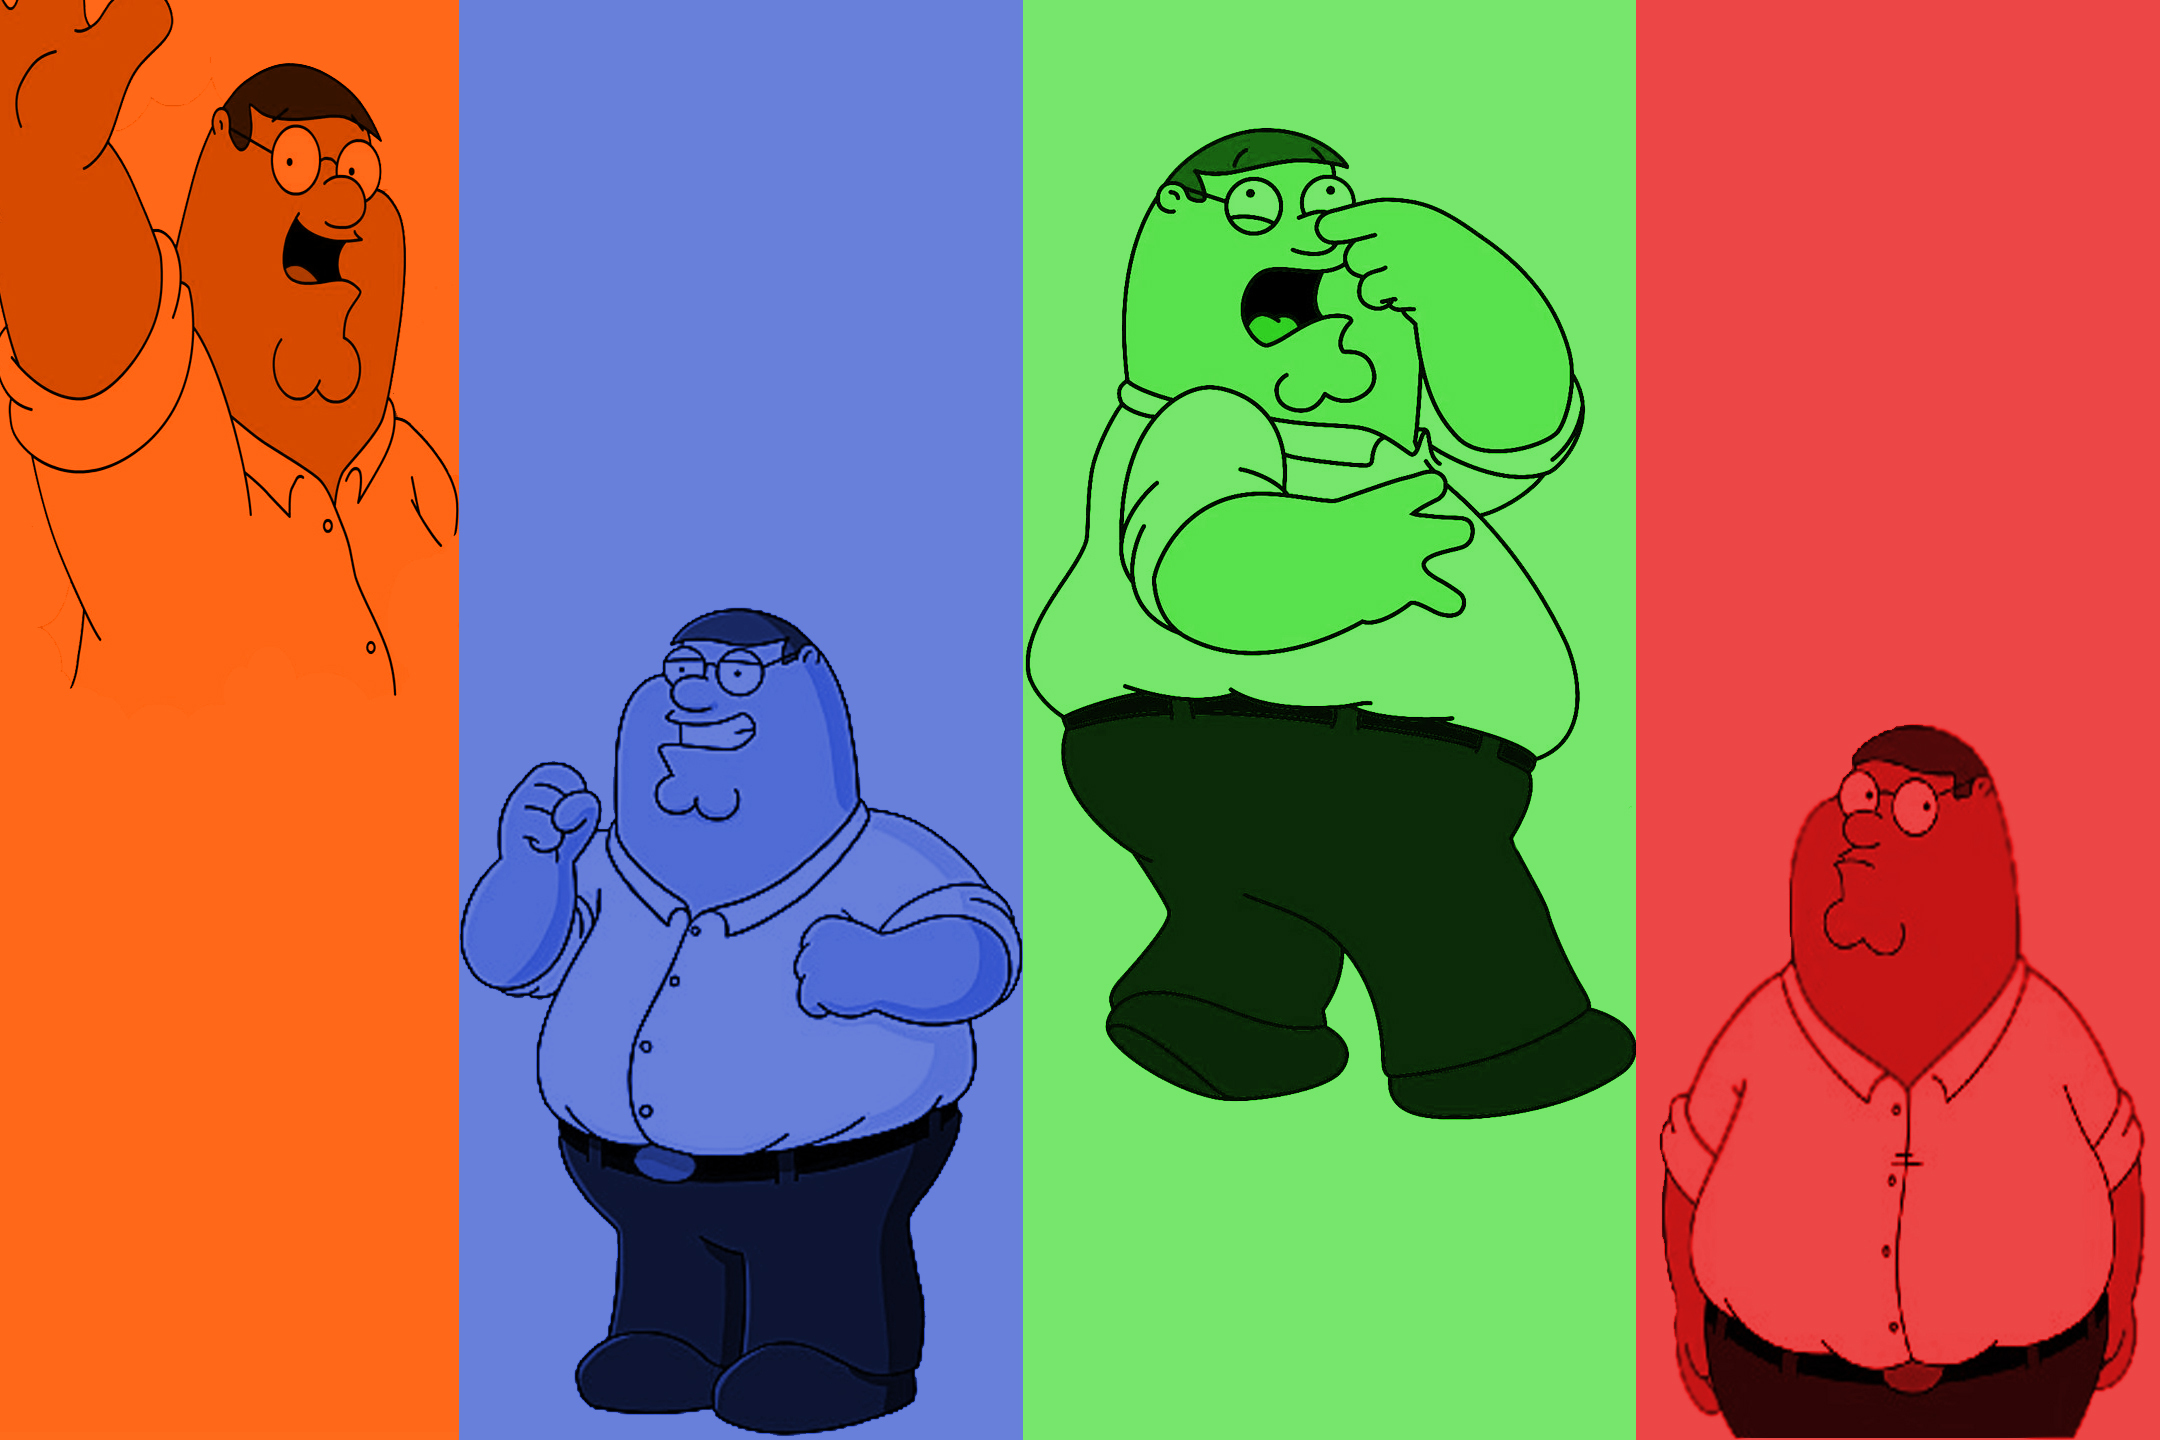 Peter Wallpaper - Family Guy 2160x1440